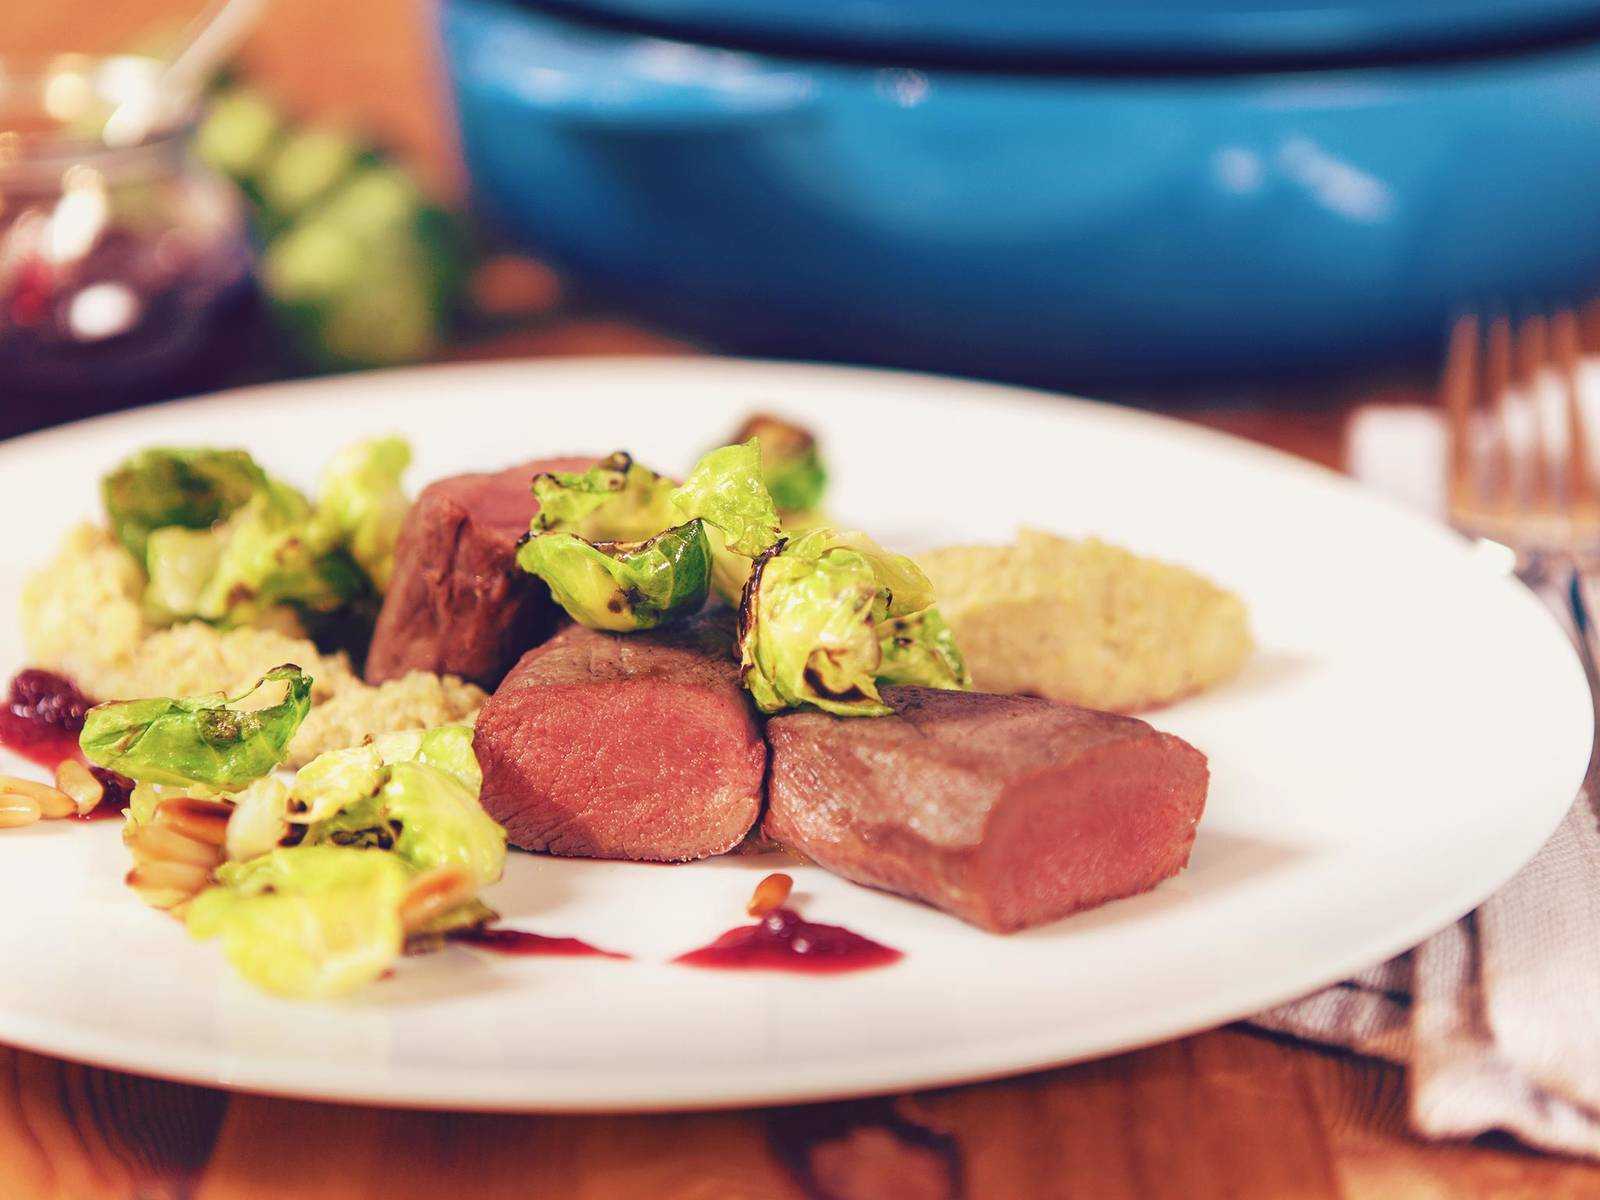 Saddle of venison with Brussels sprouts